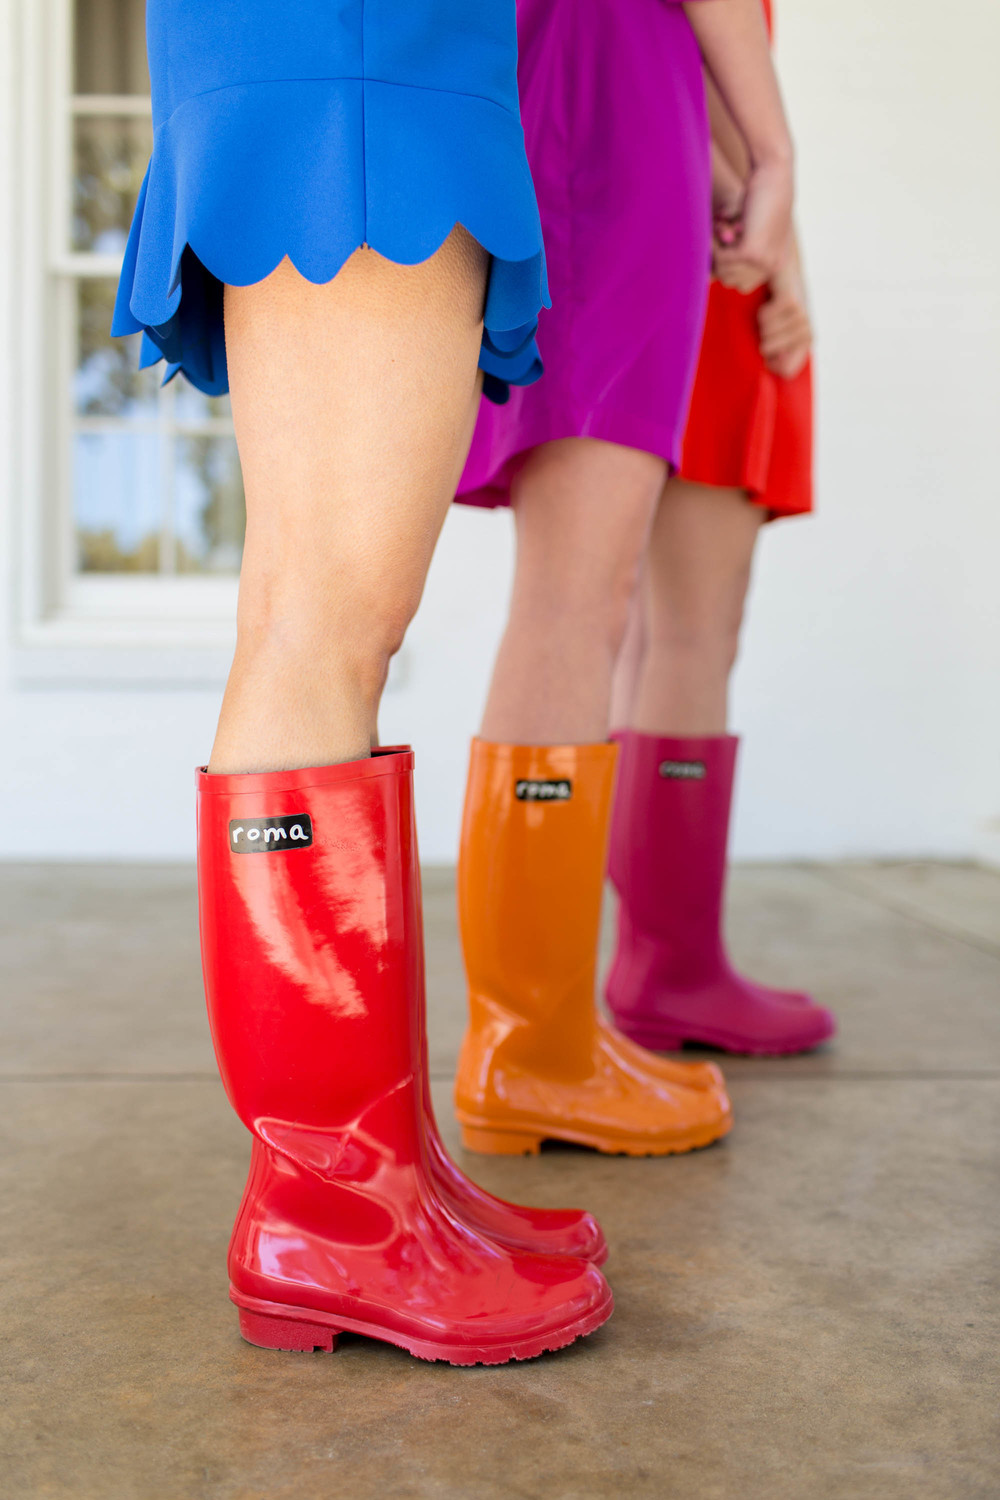 Boots Provided by  Roma Boots , a one for one company that uses fashion to give poverty the boot. This company is near and dear to our hearts.Boots shown in  Glossy Red, Glossy Orange, and Matte Magenta.